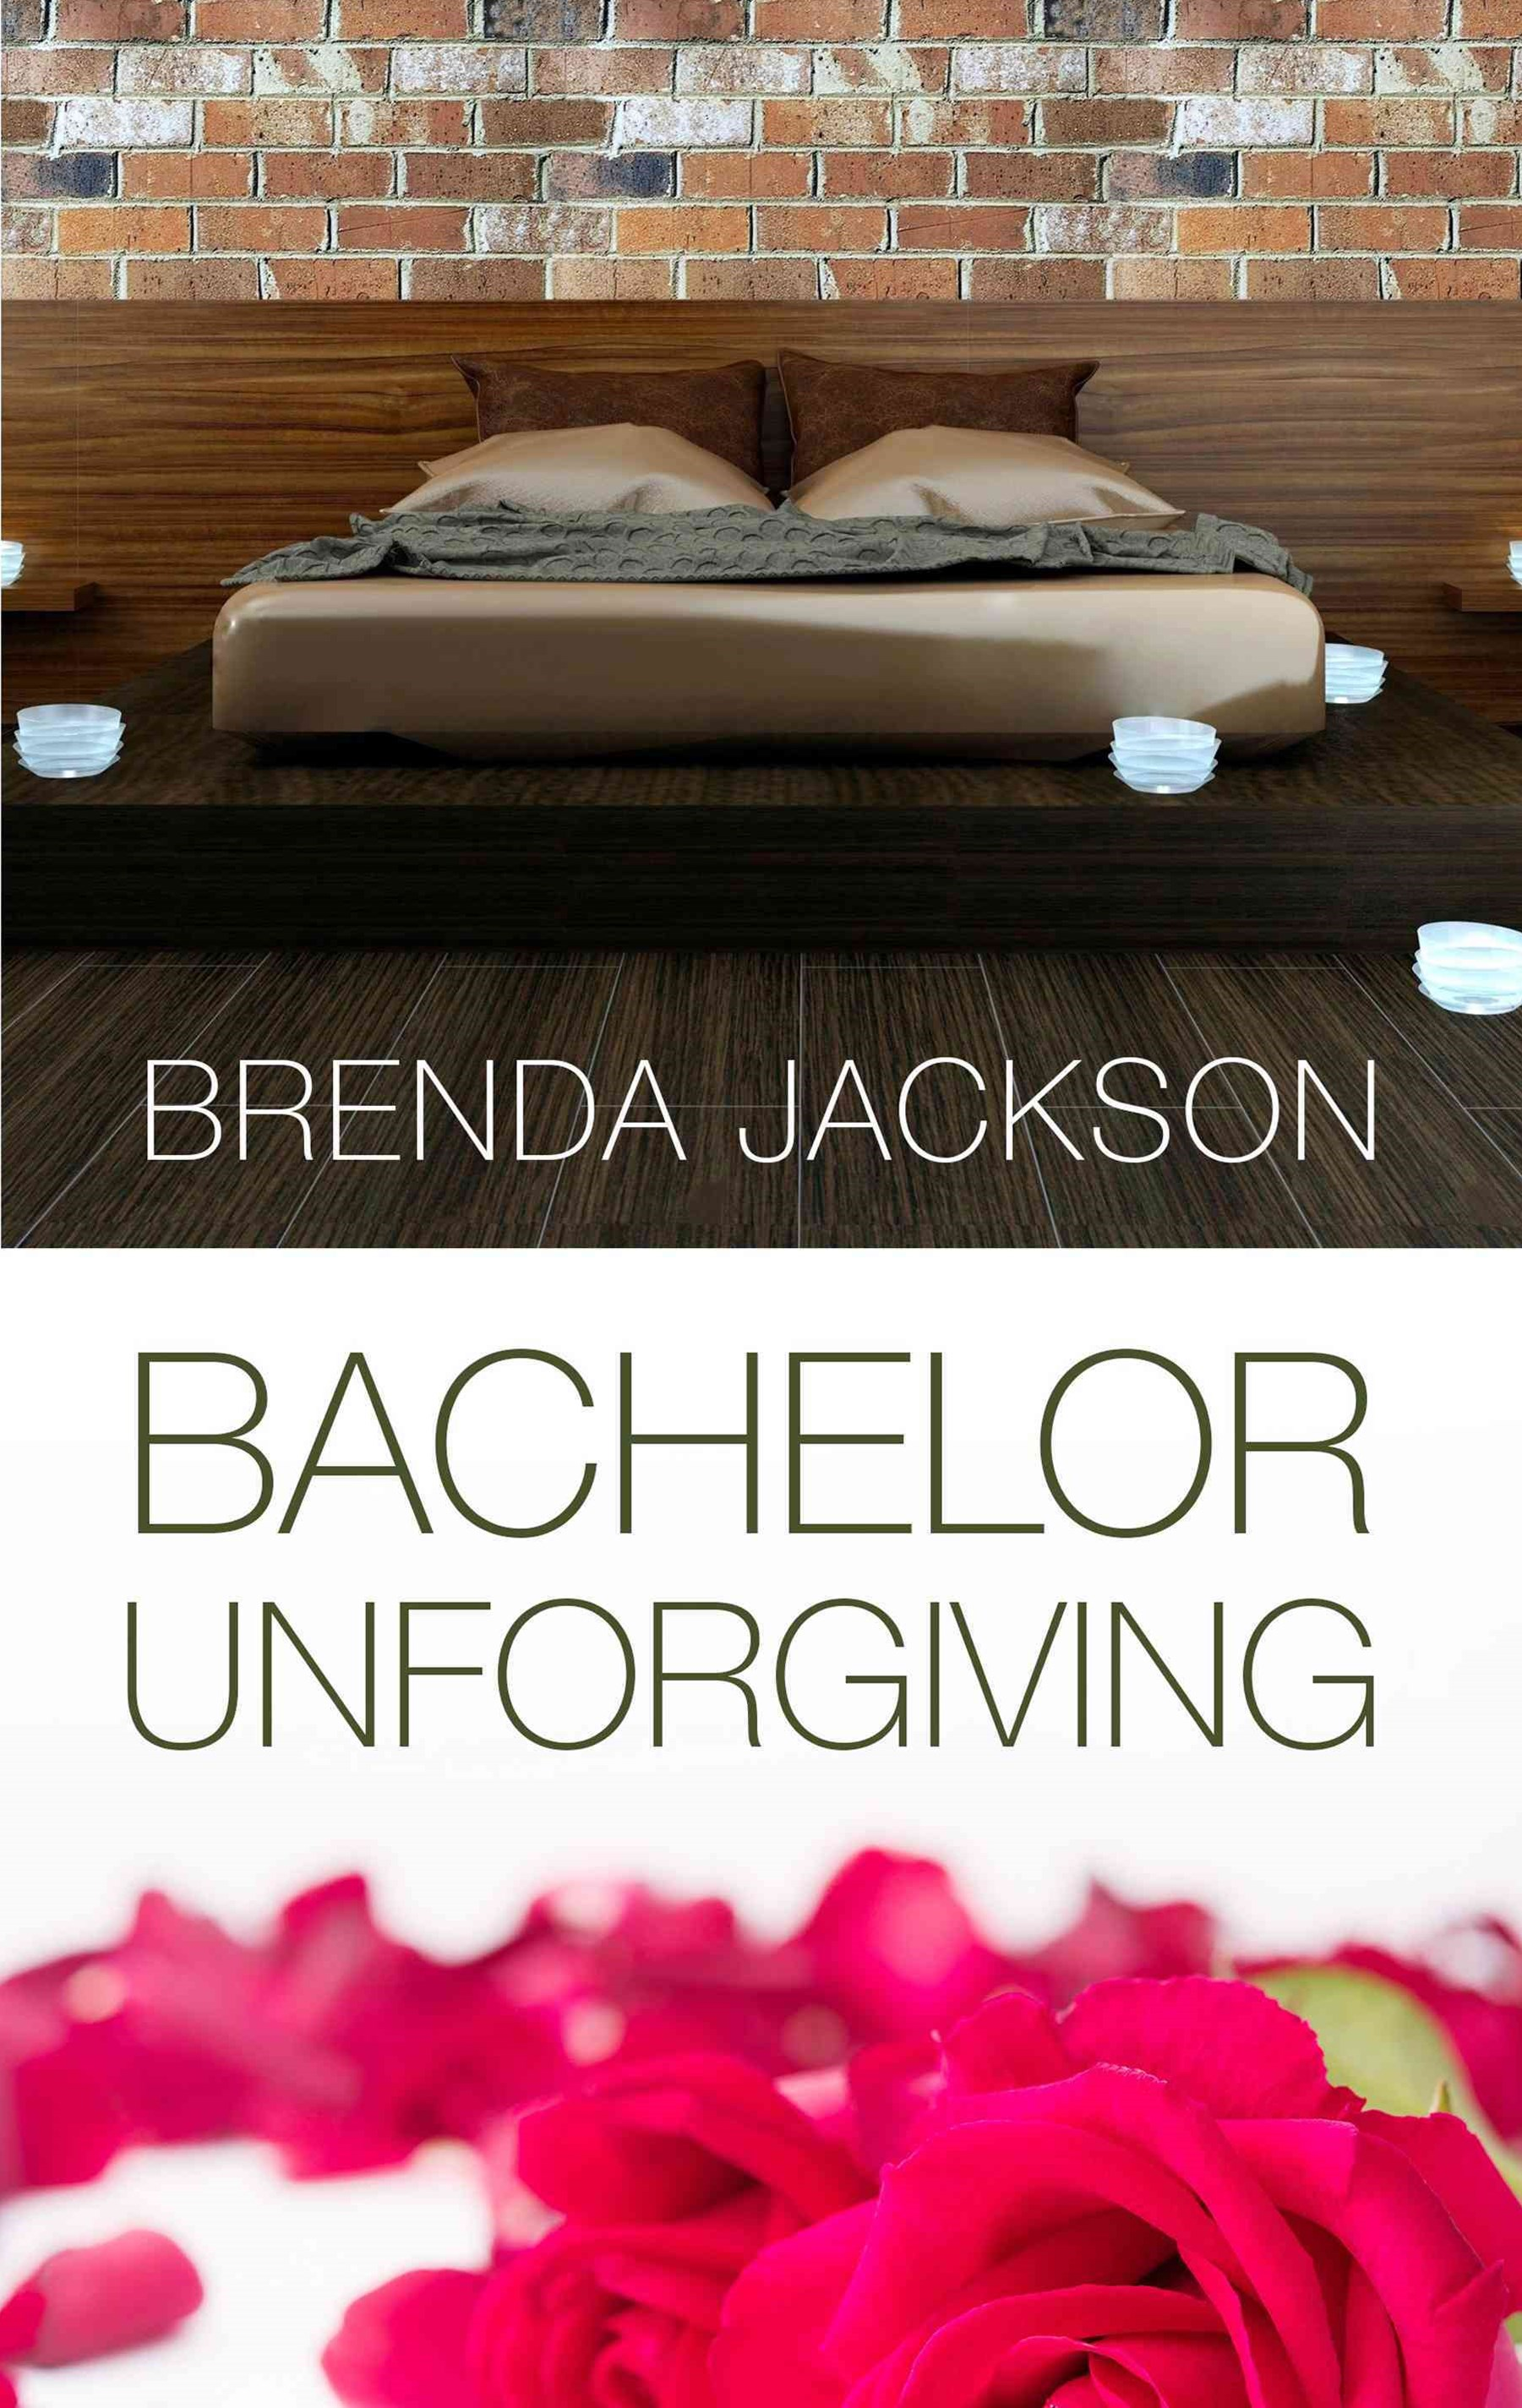 Bachelor Unforgiving